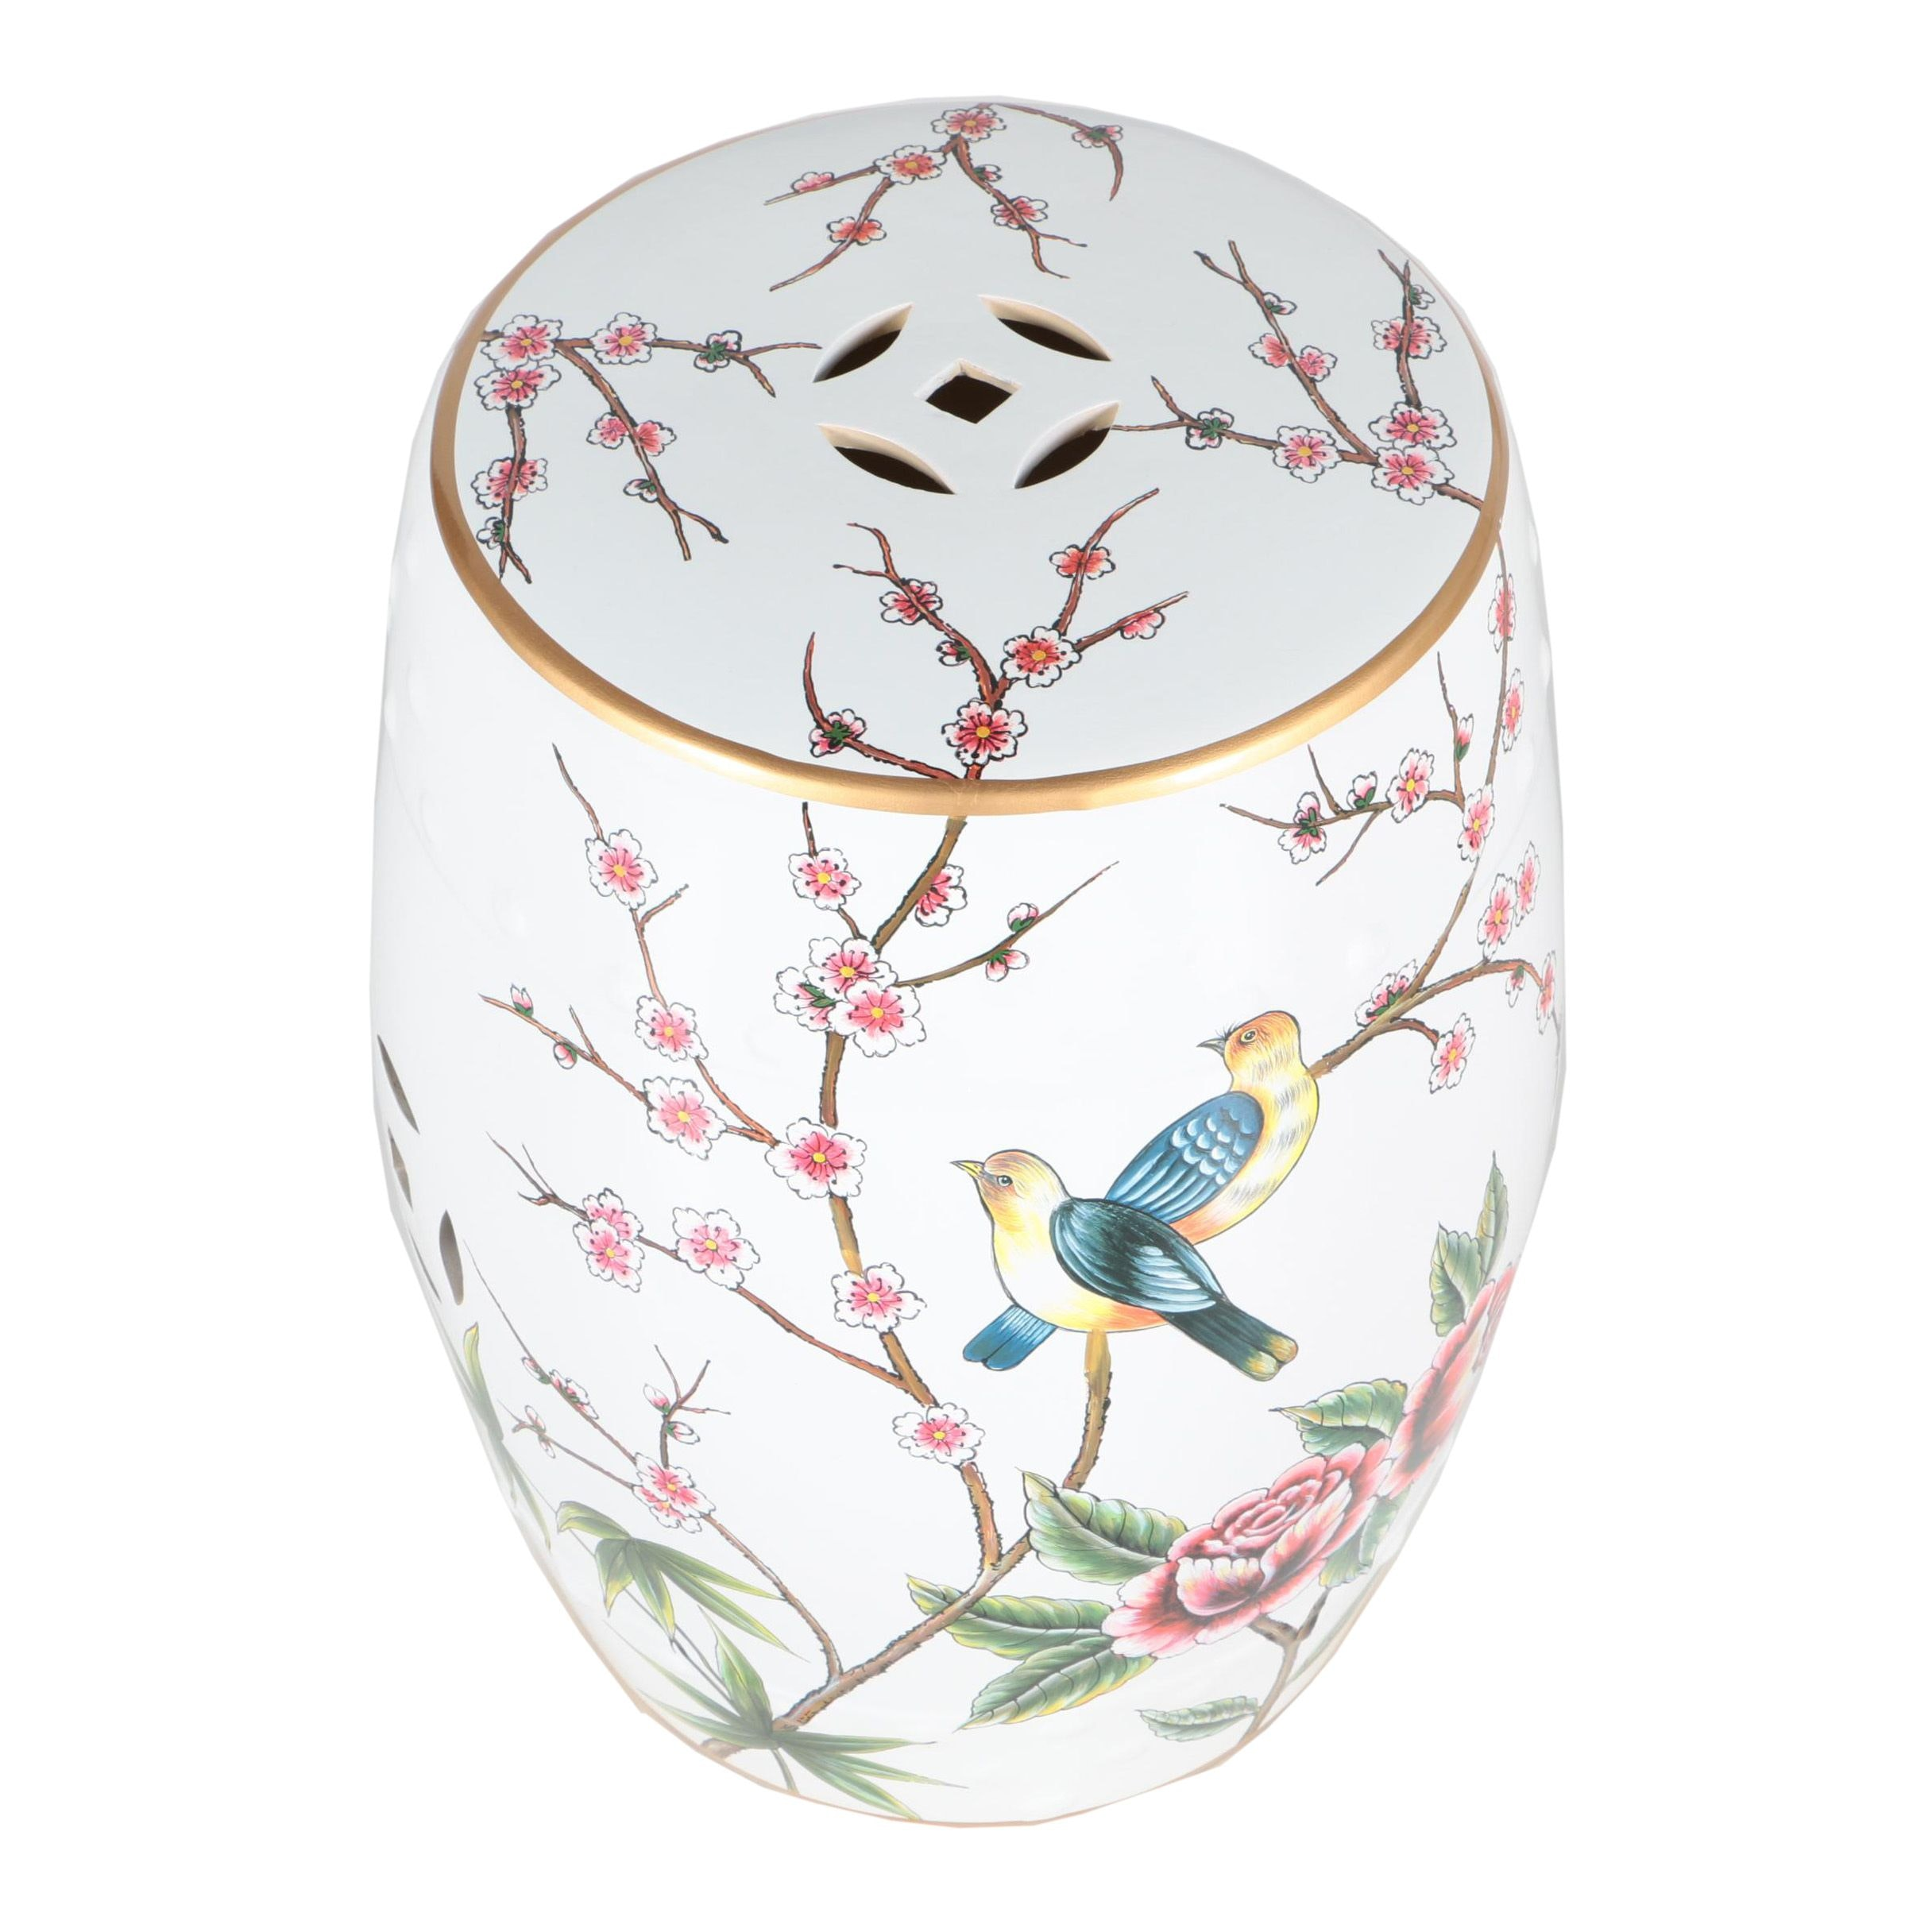 Cherry Blossom and Bird Themed Ceramic Garden Stool